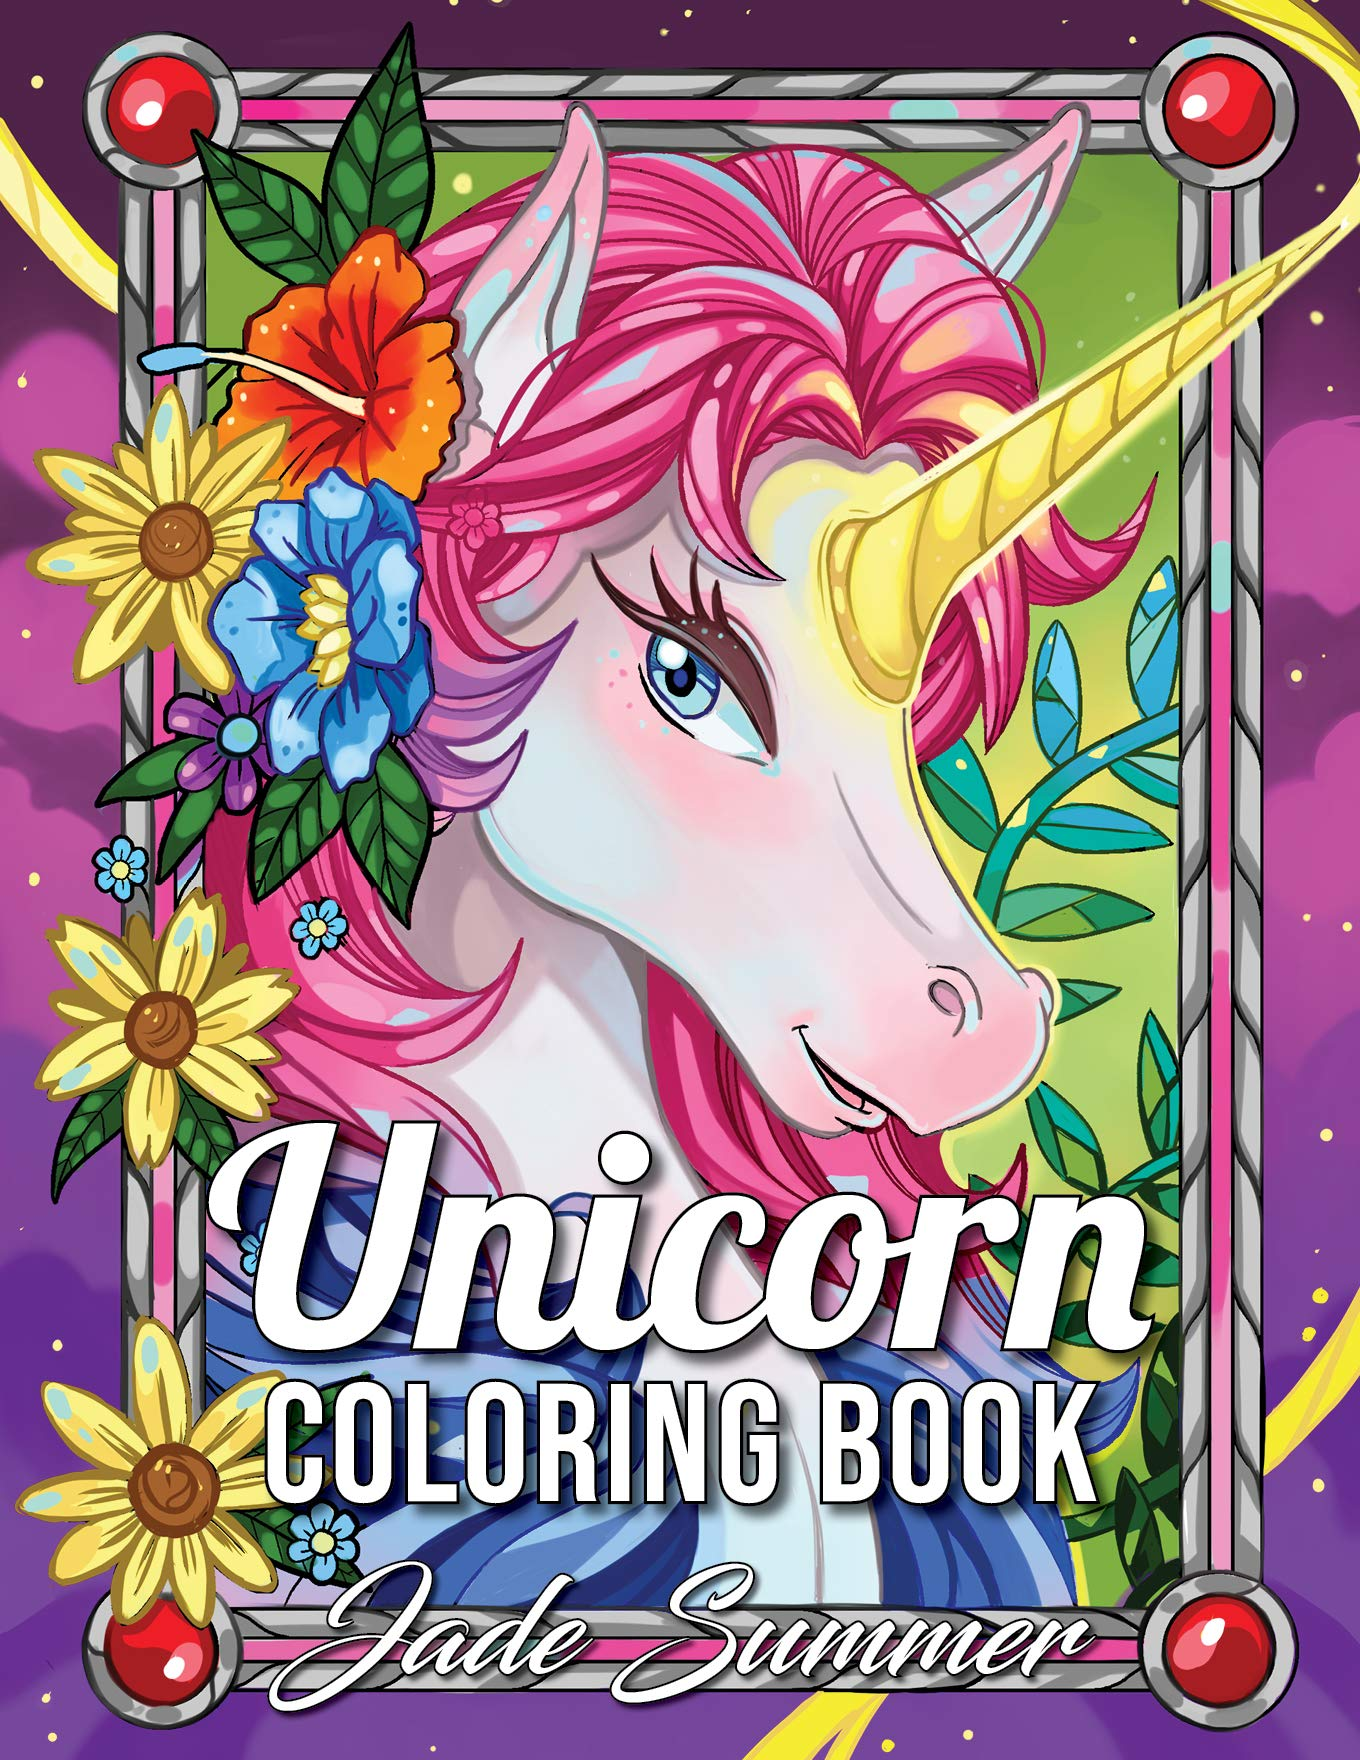 Amazon.com: Unicorn Coloring Book: An Adult Coloring Book with